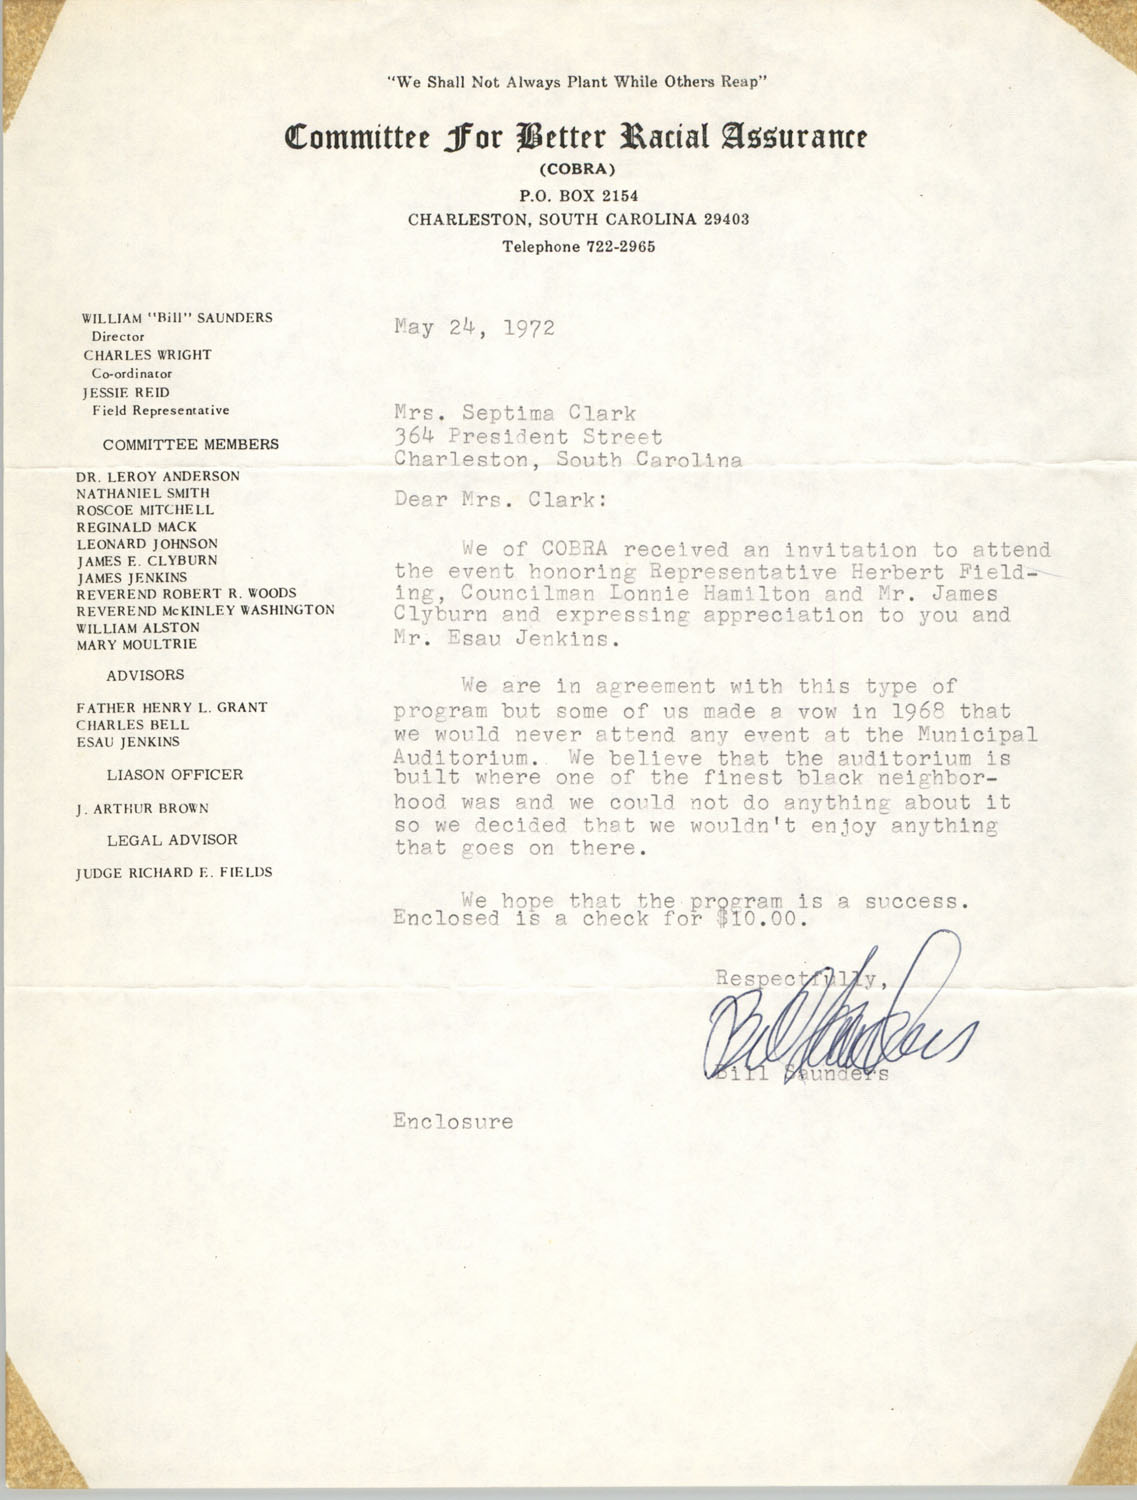 Letter from Bill Saunders to Septima P. Clark, May 24, 1972